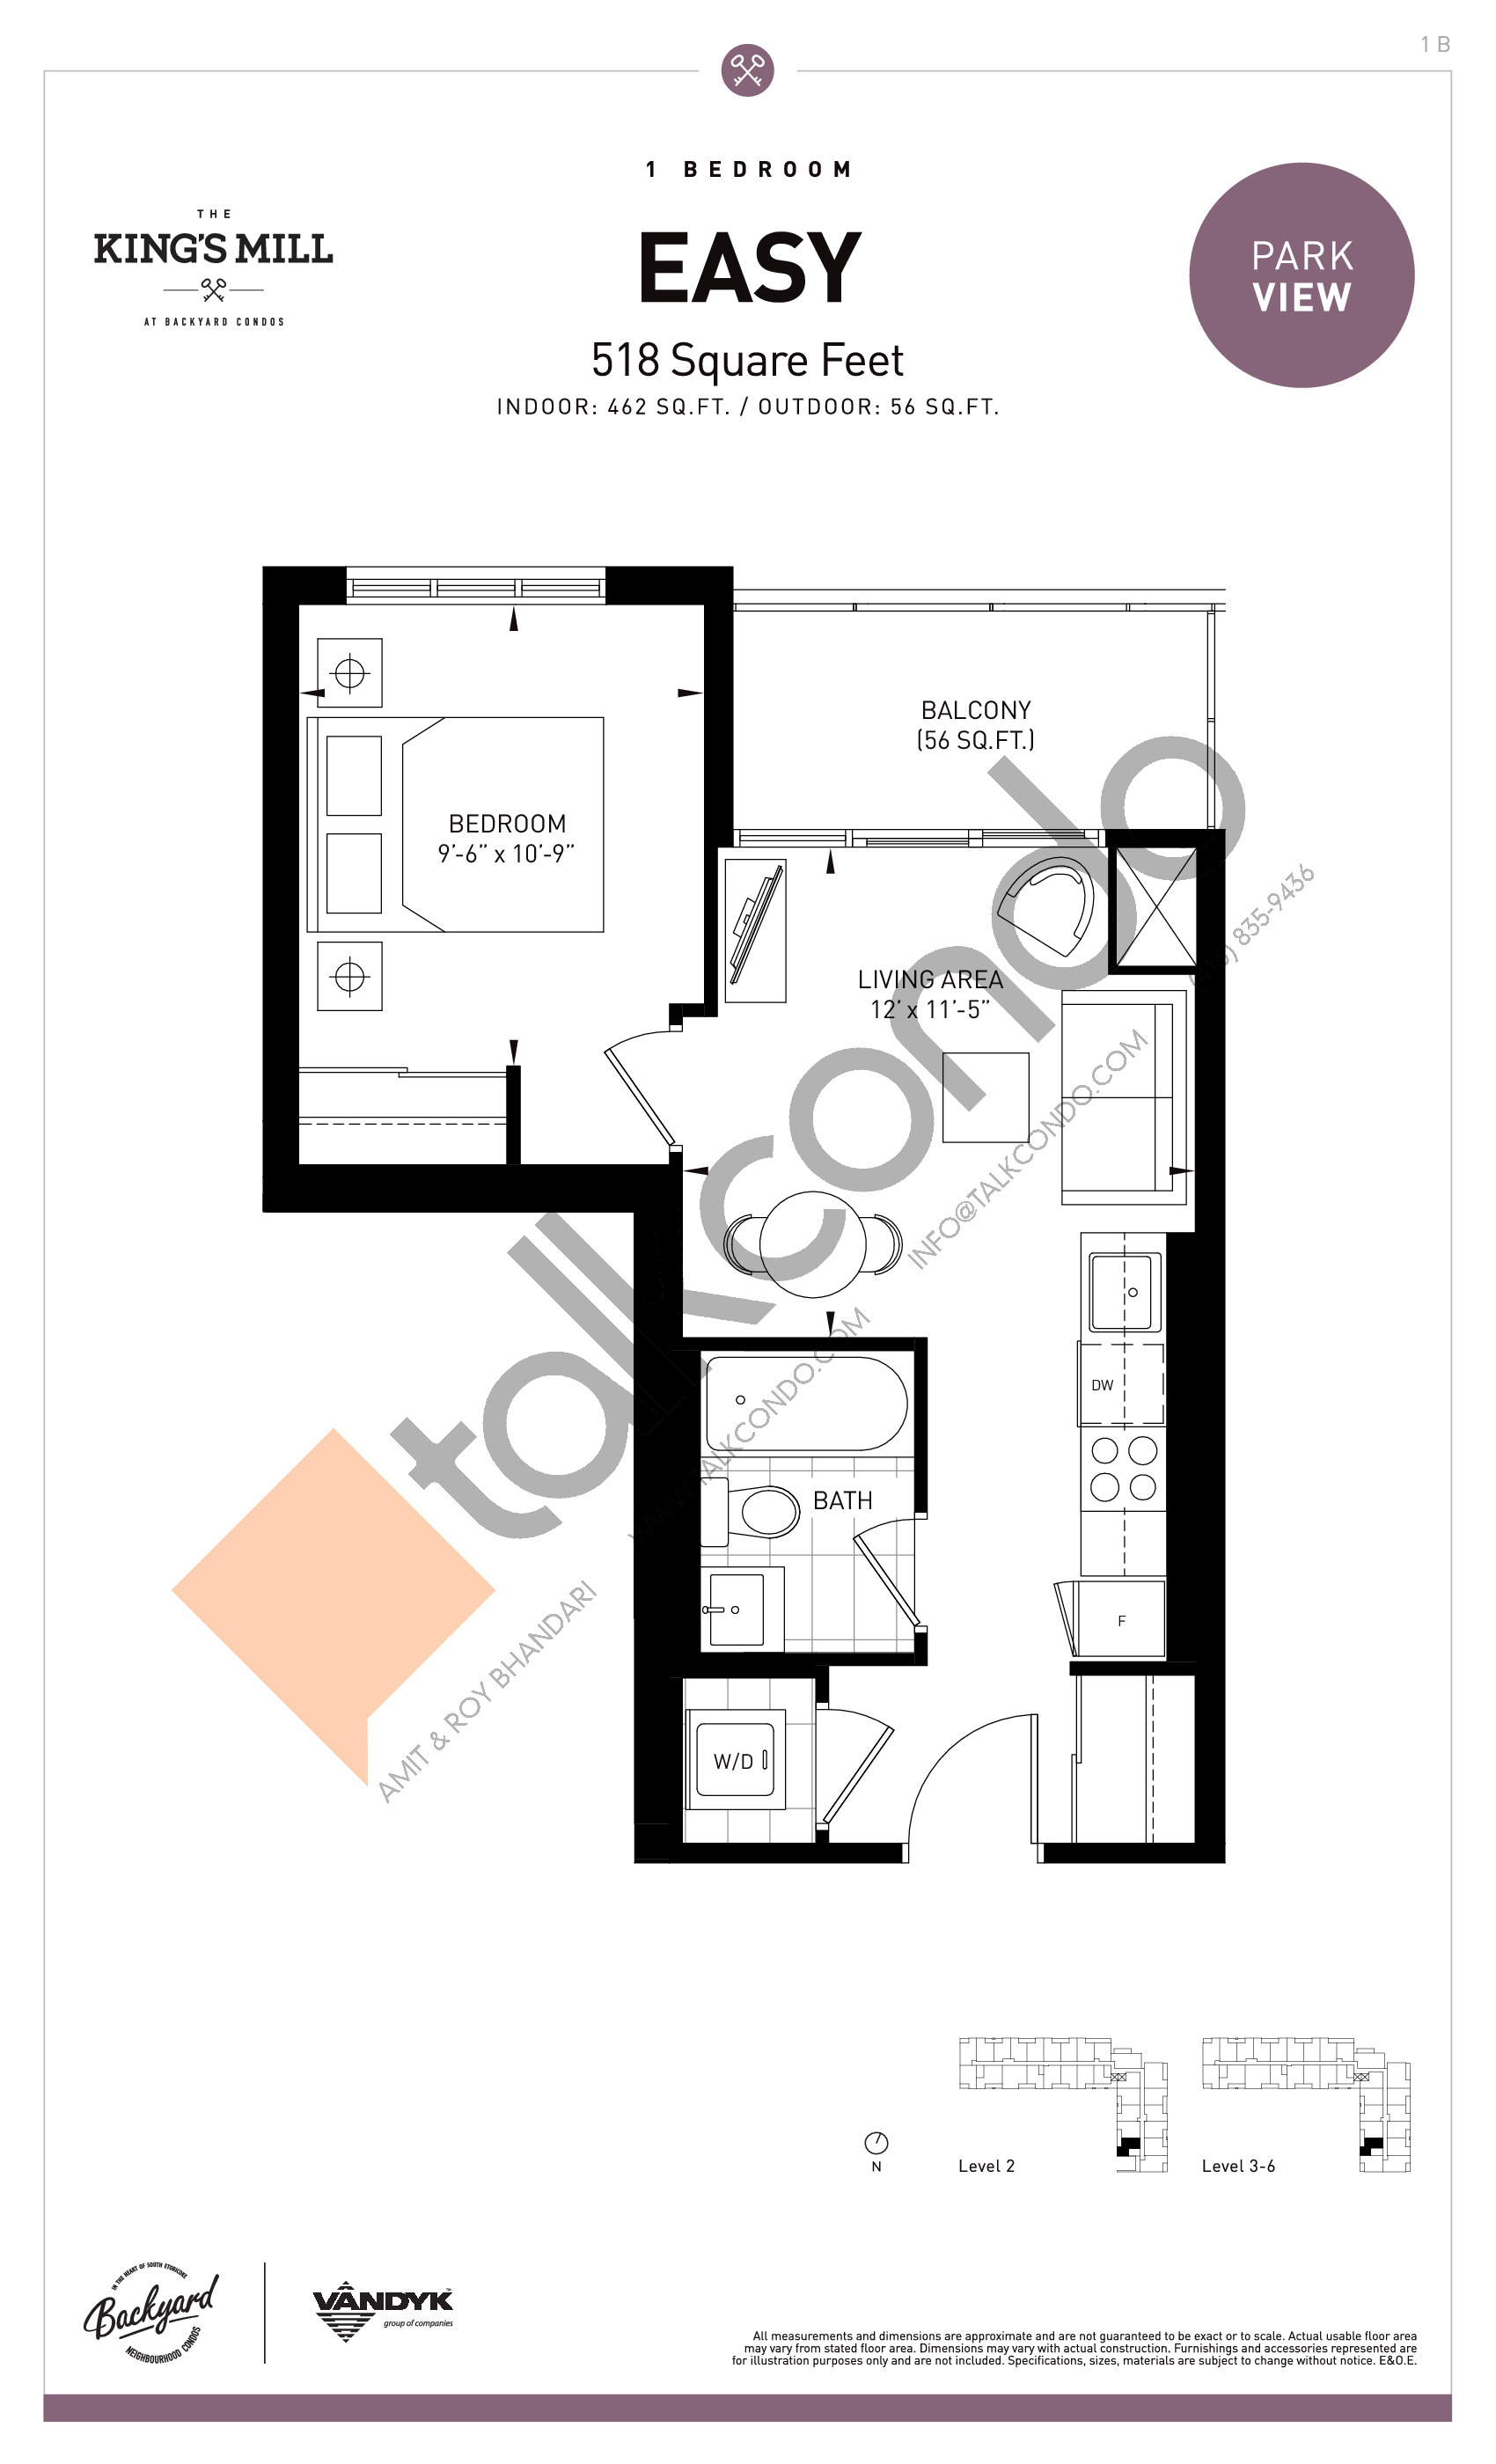 Easy Floor Plan at The King's Mill Condos - 462 sq.ft